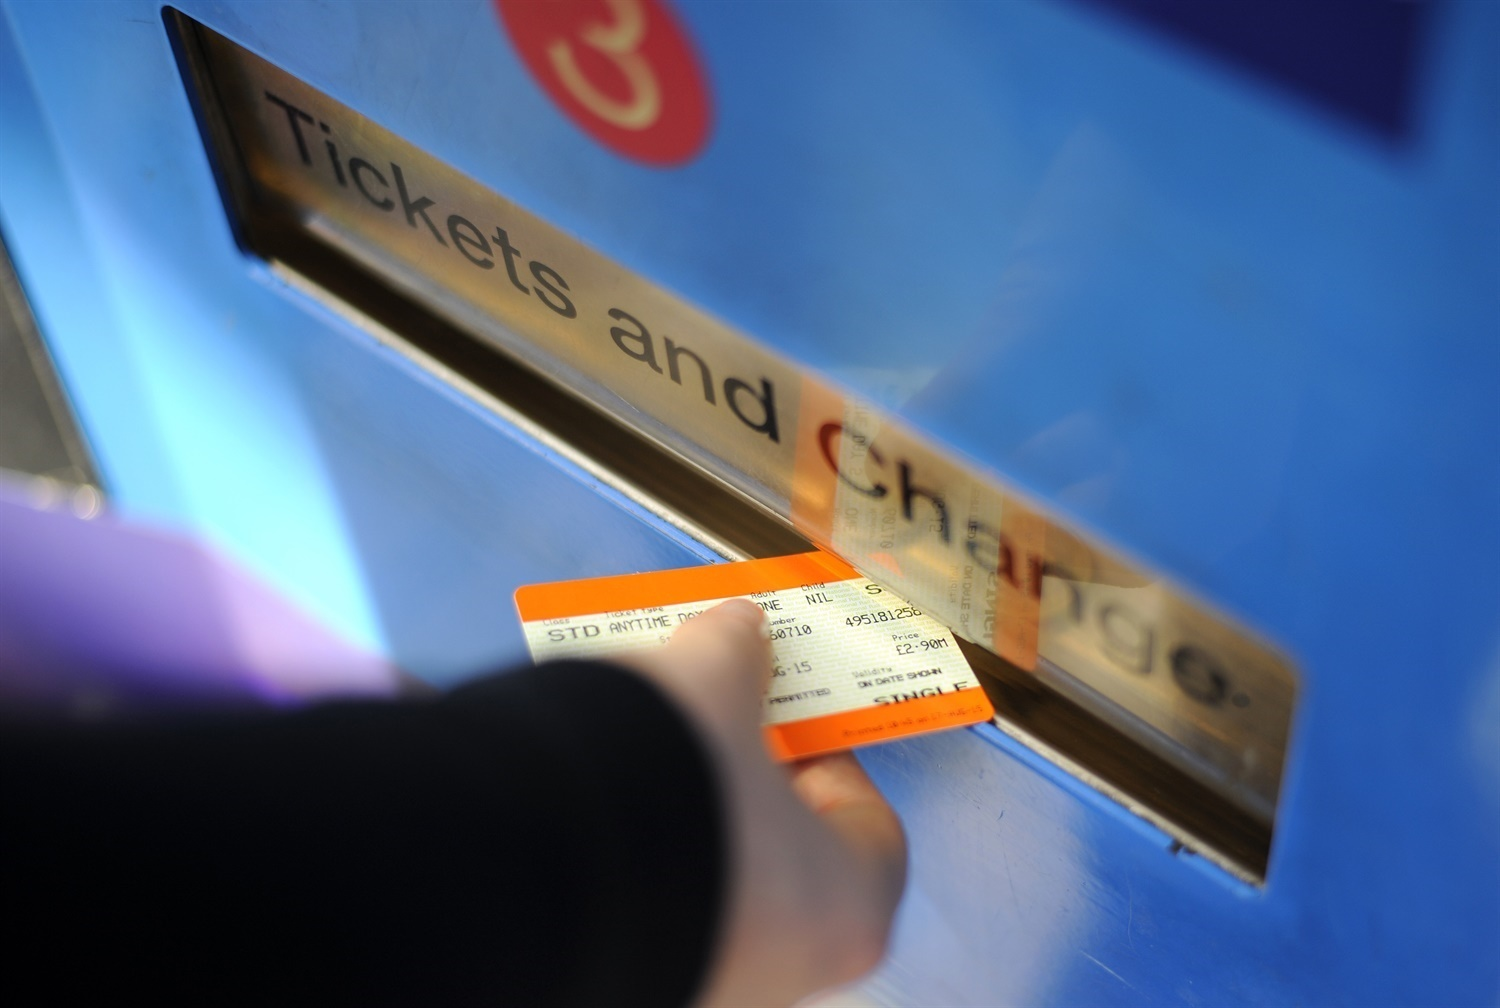 Rail industry agrees to trial most 'radical' fares overhaul in 30 years